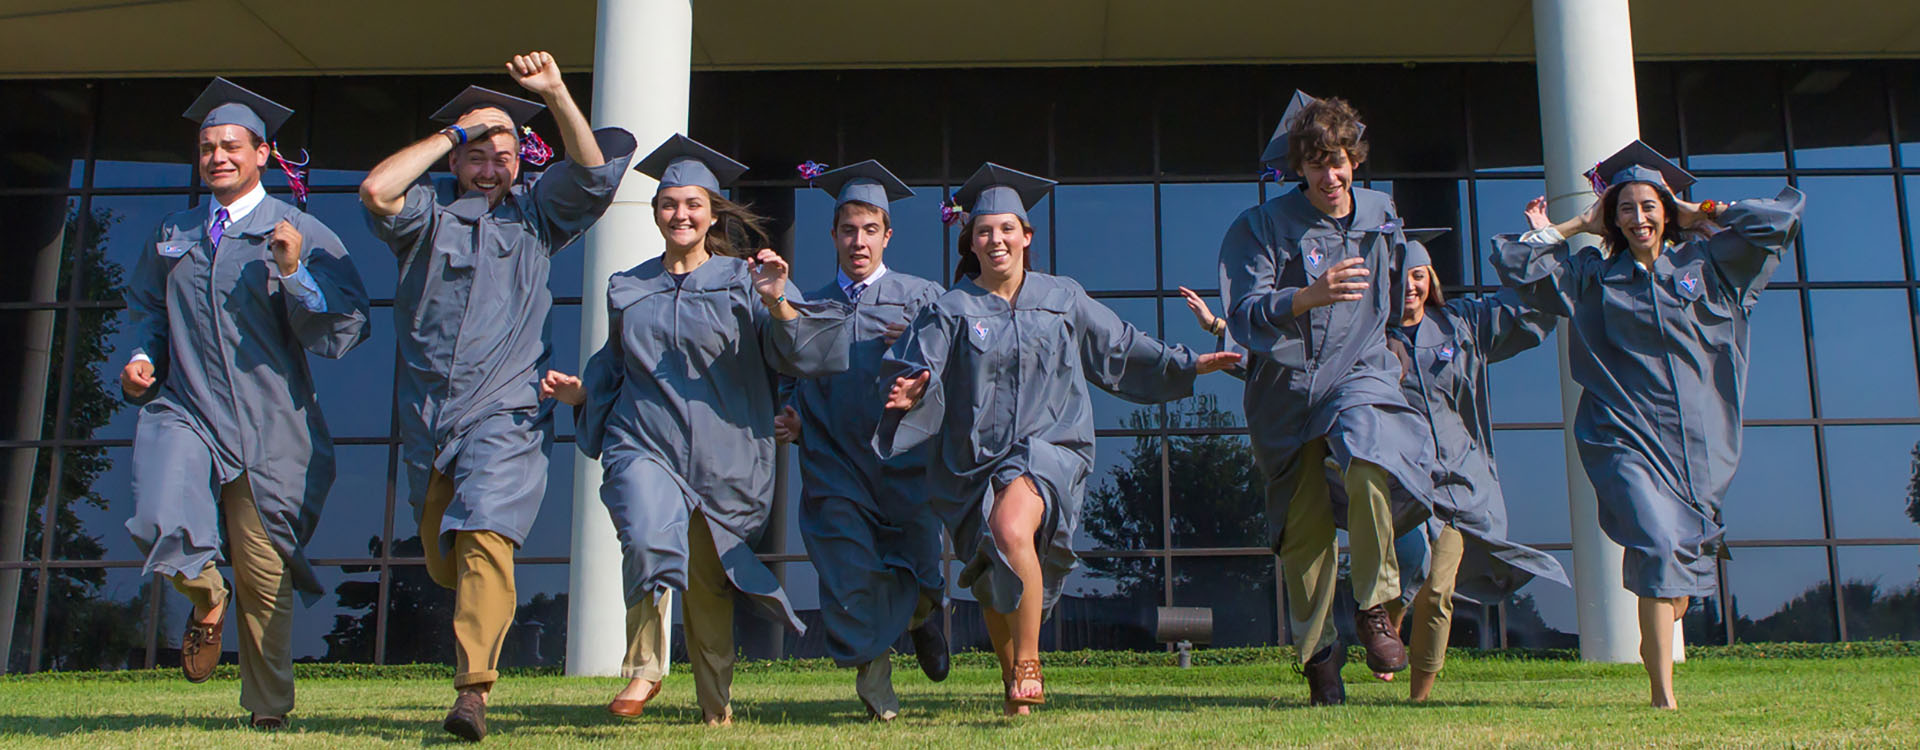 graduates running across the lawn